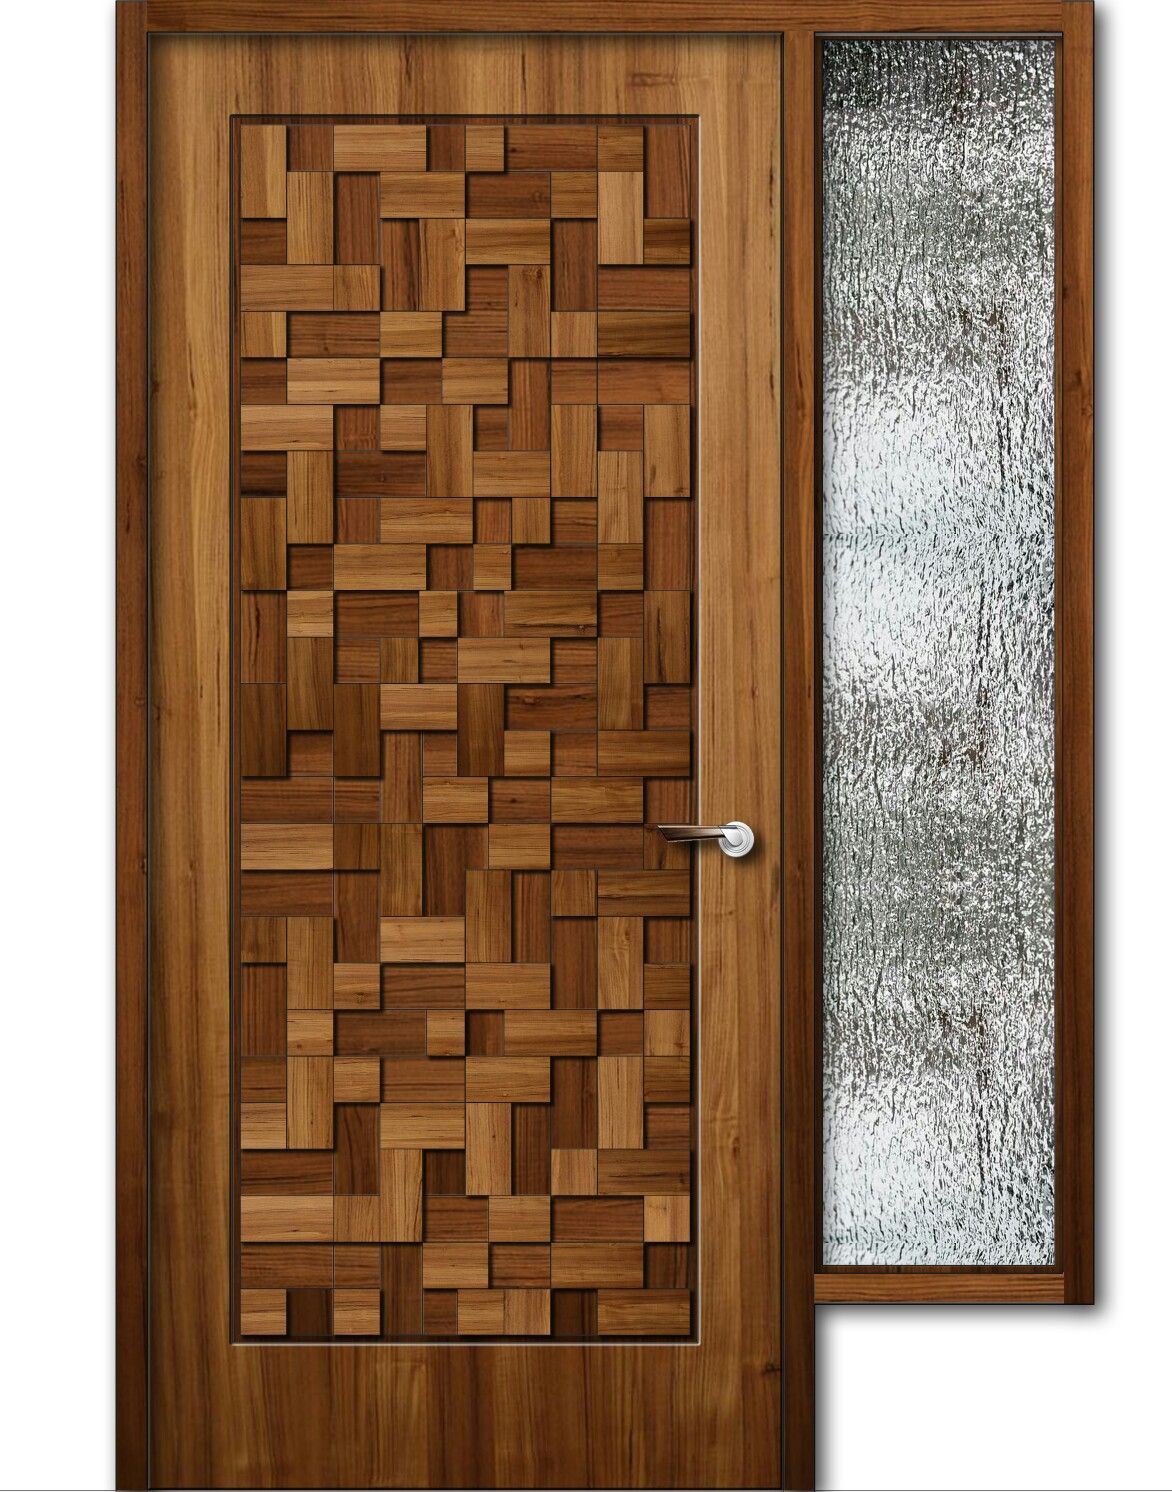 Teak wood finish wooden door with window 8feet height for Door design picture